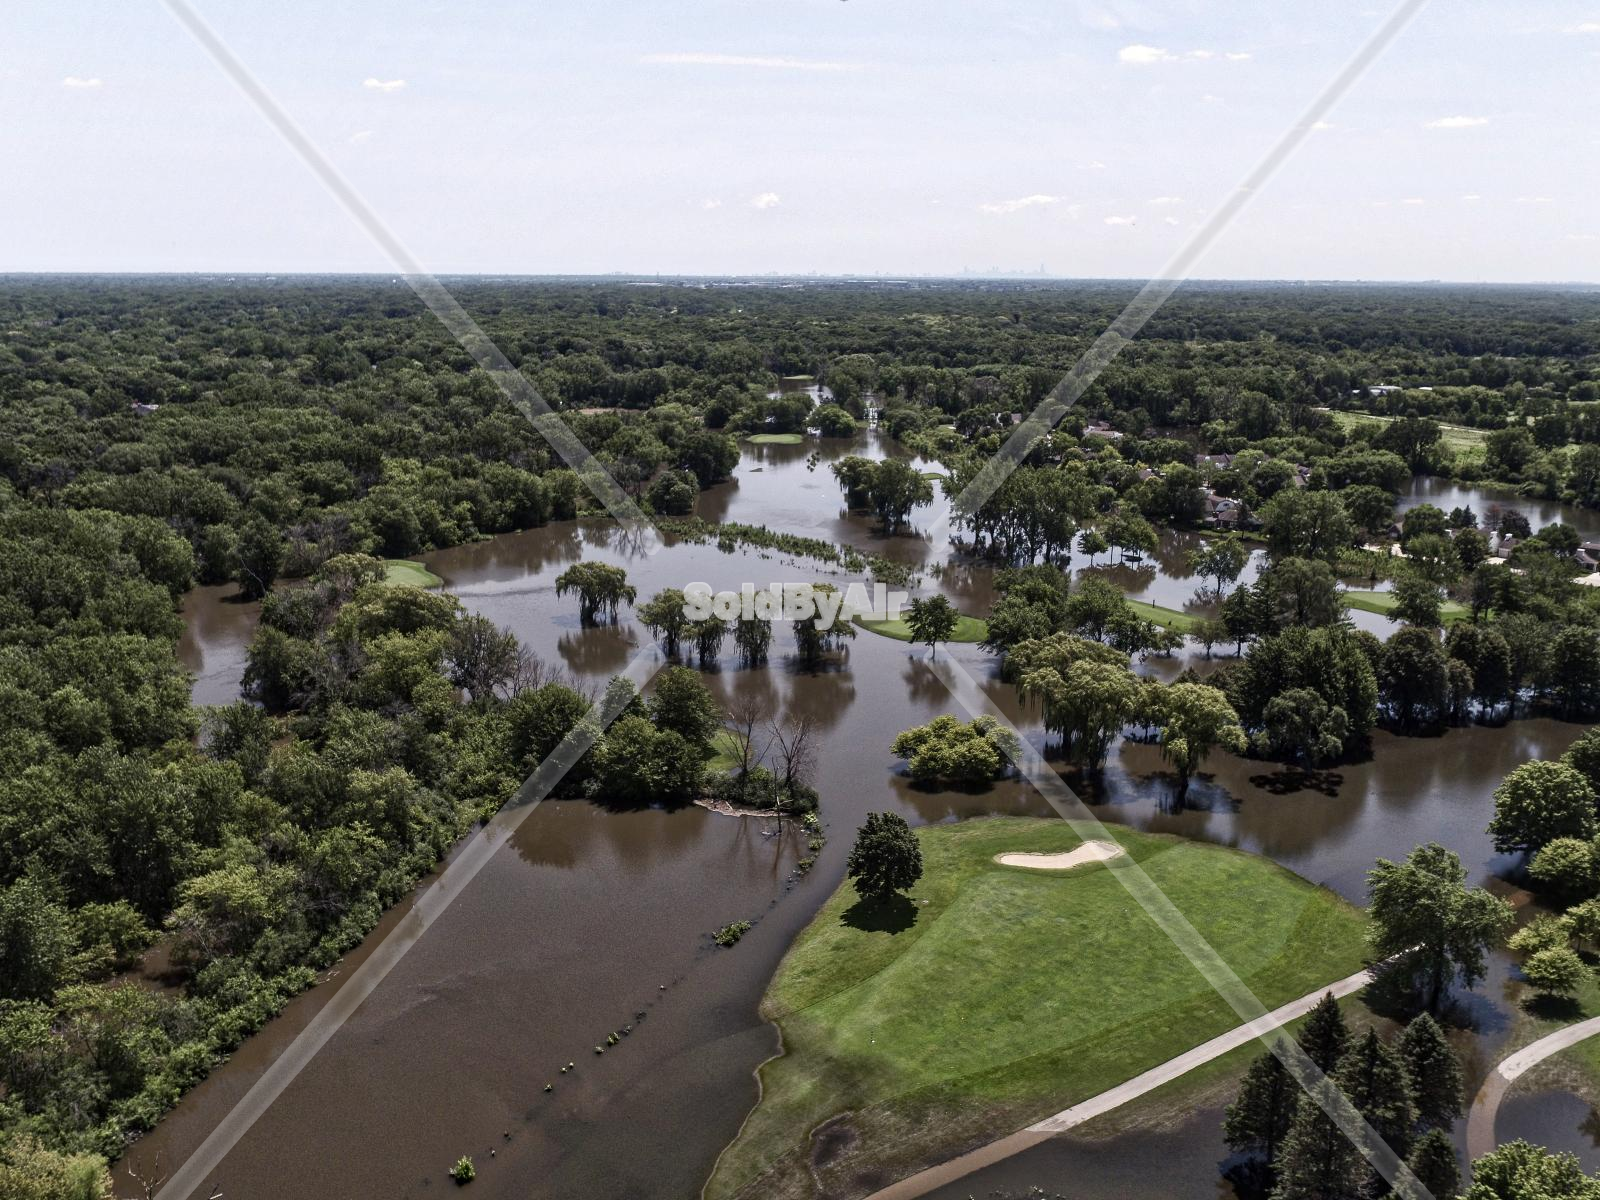 Drone Photo of Des Plaines River flooding Summer 2017 in Lincolnshire Illinois